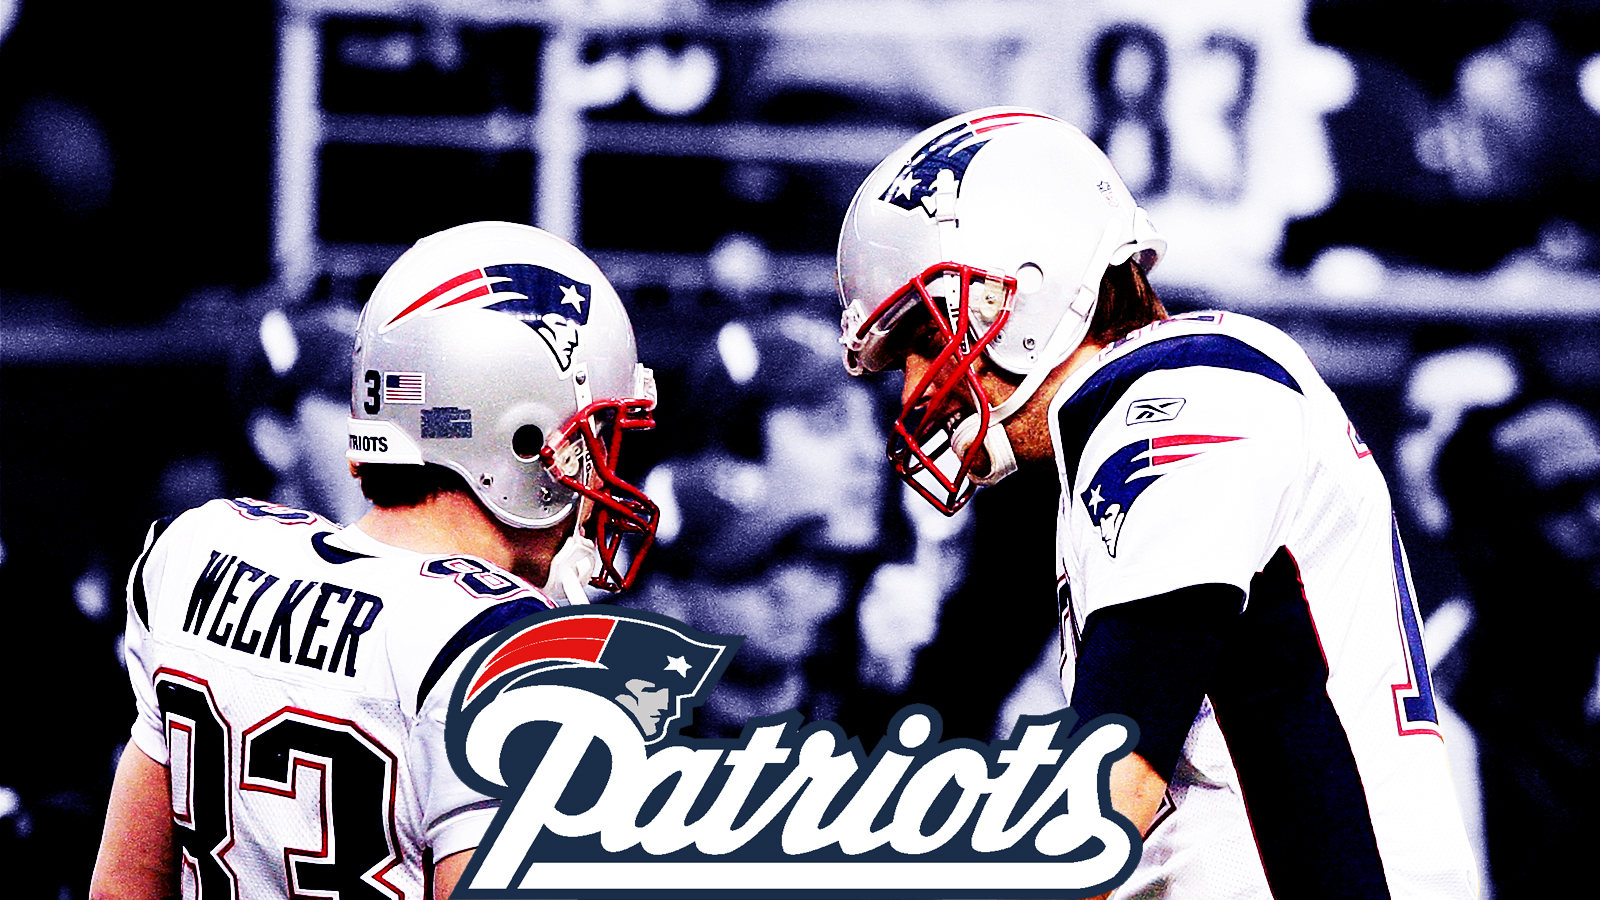 New england patriots wallpaper 5527 1600x900 px hdwallsource new england patriots wallpaper 5527 voltagebd Gallery